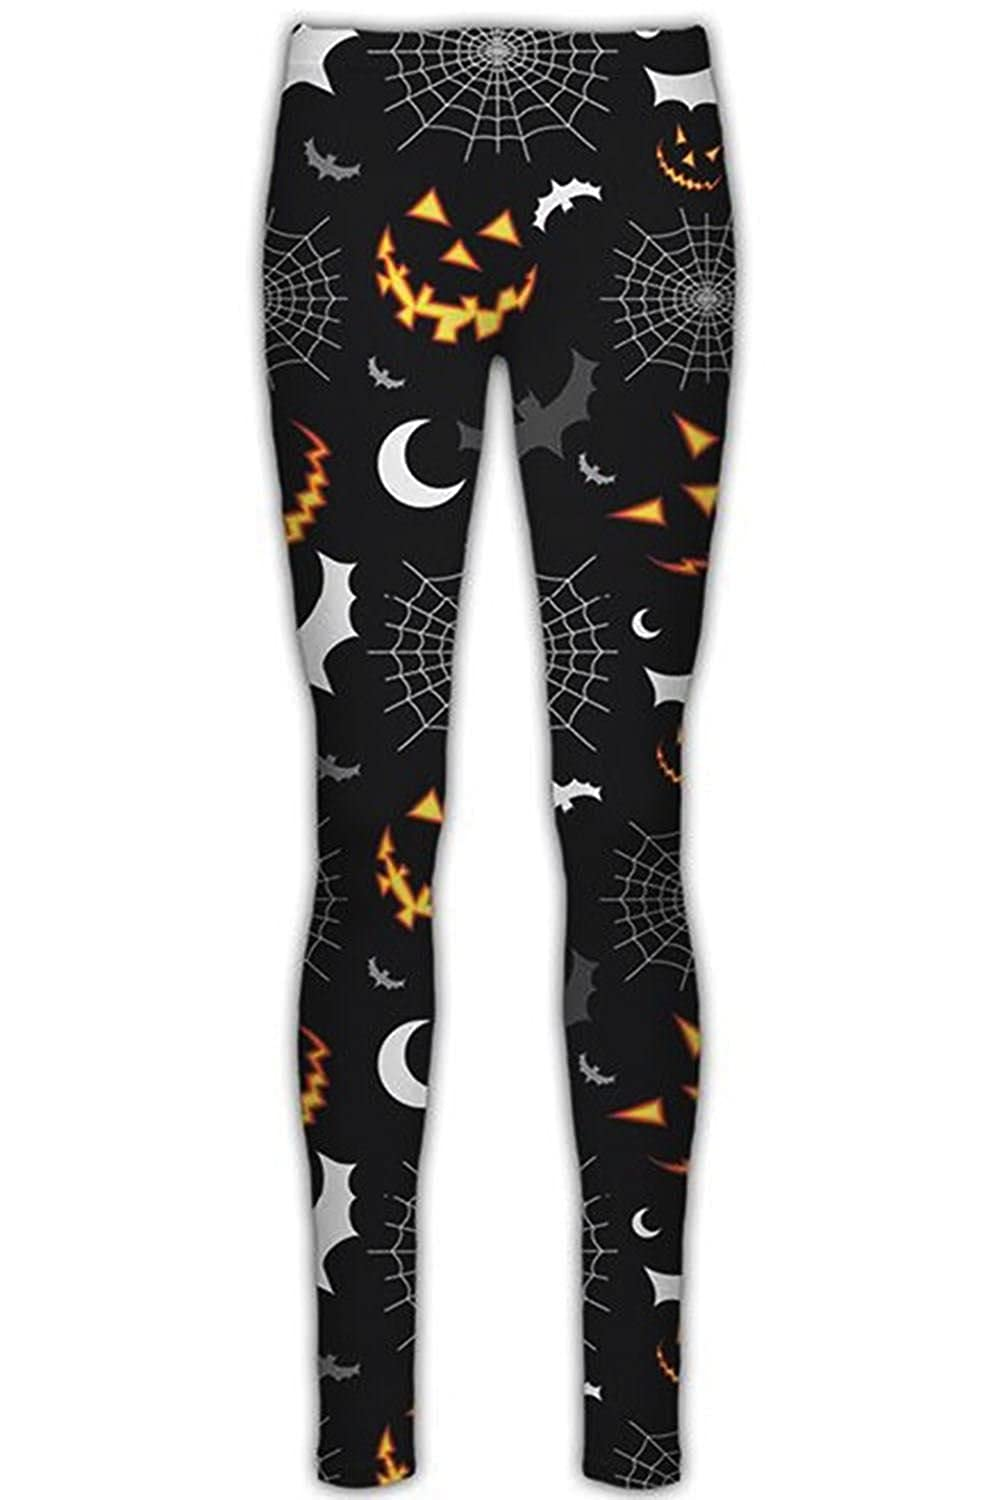 7e03778c3c816 Online Cheap wholesale Oops Outlet New Womens Halloween Pumpkin Spooky  Spider Skull Leggings Jeggings Suppliers